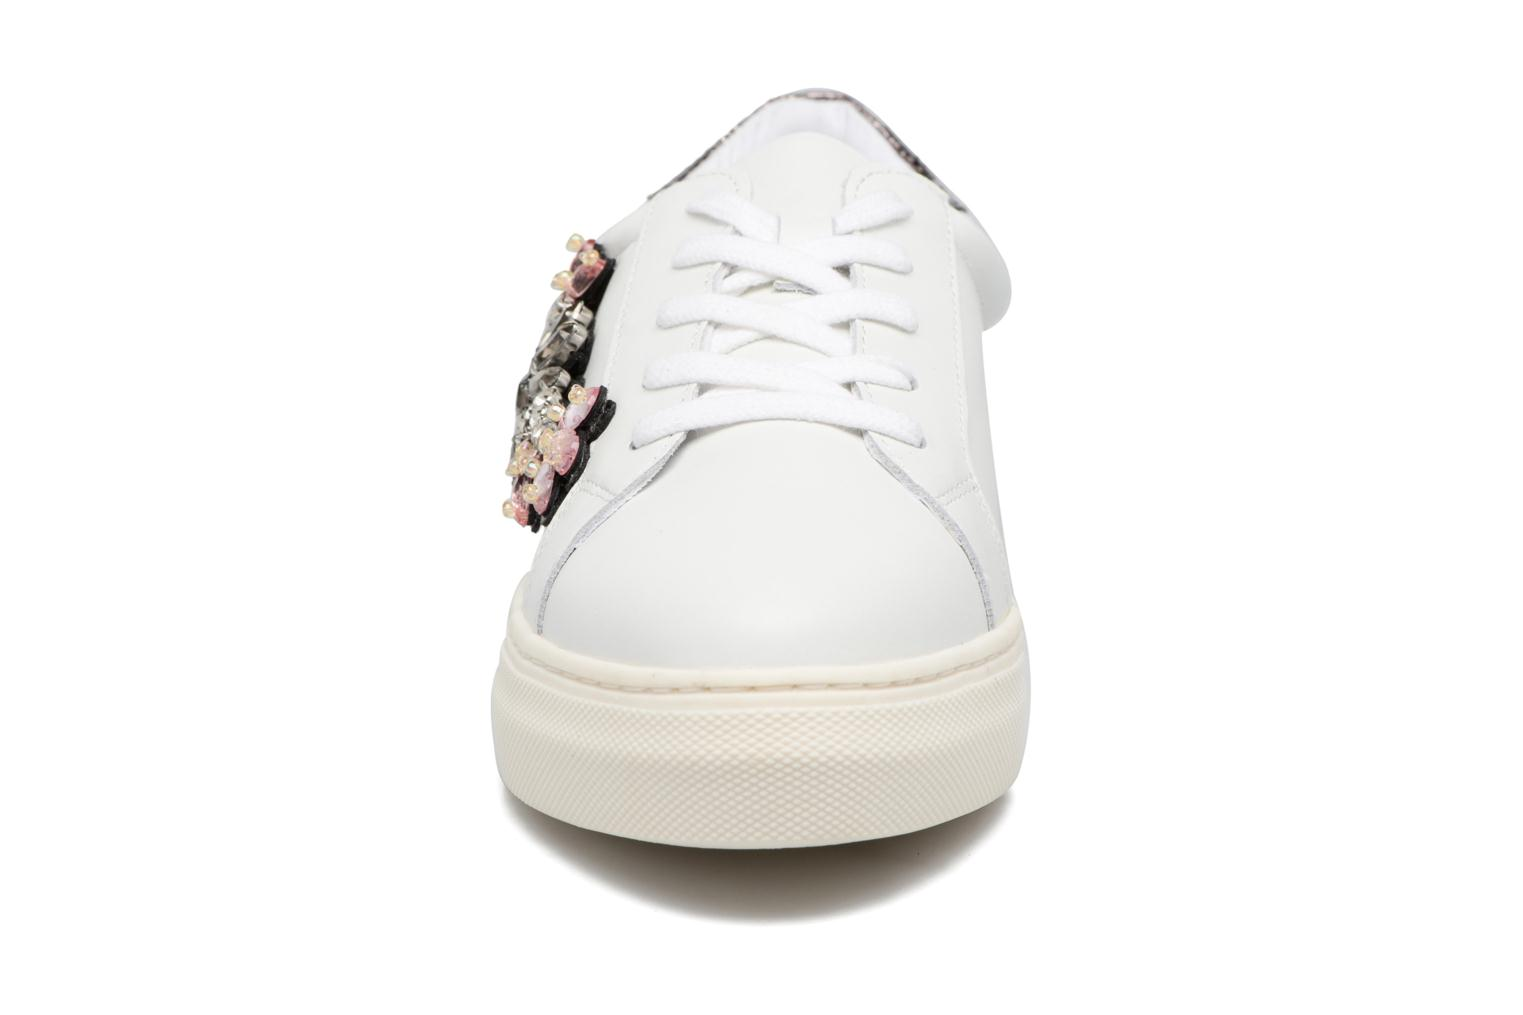 Emerelda White leather